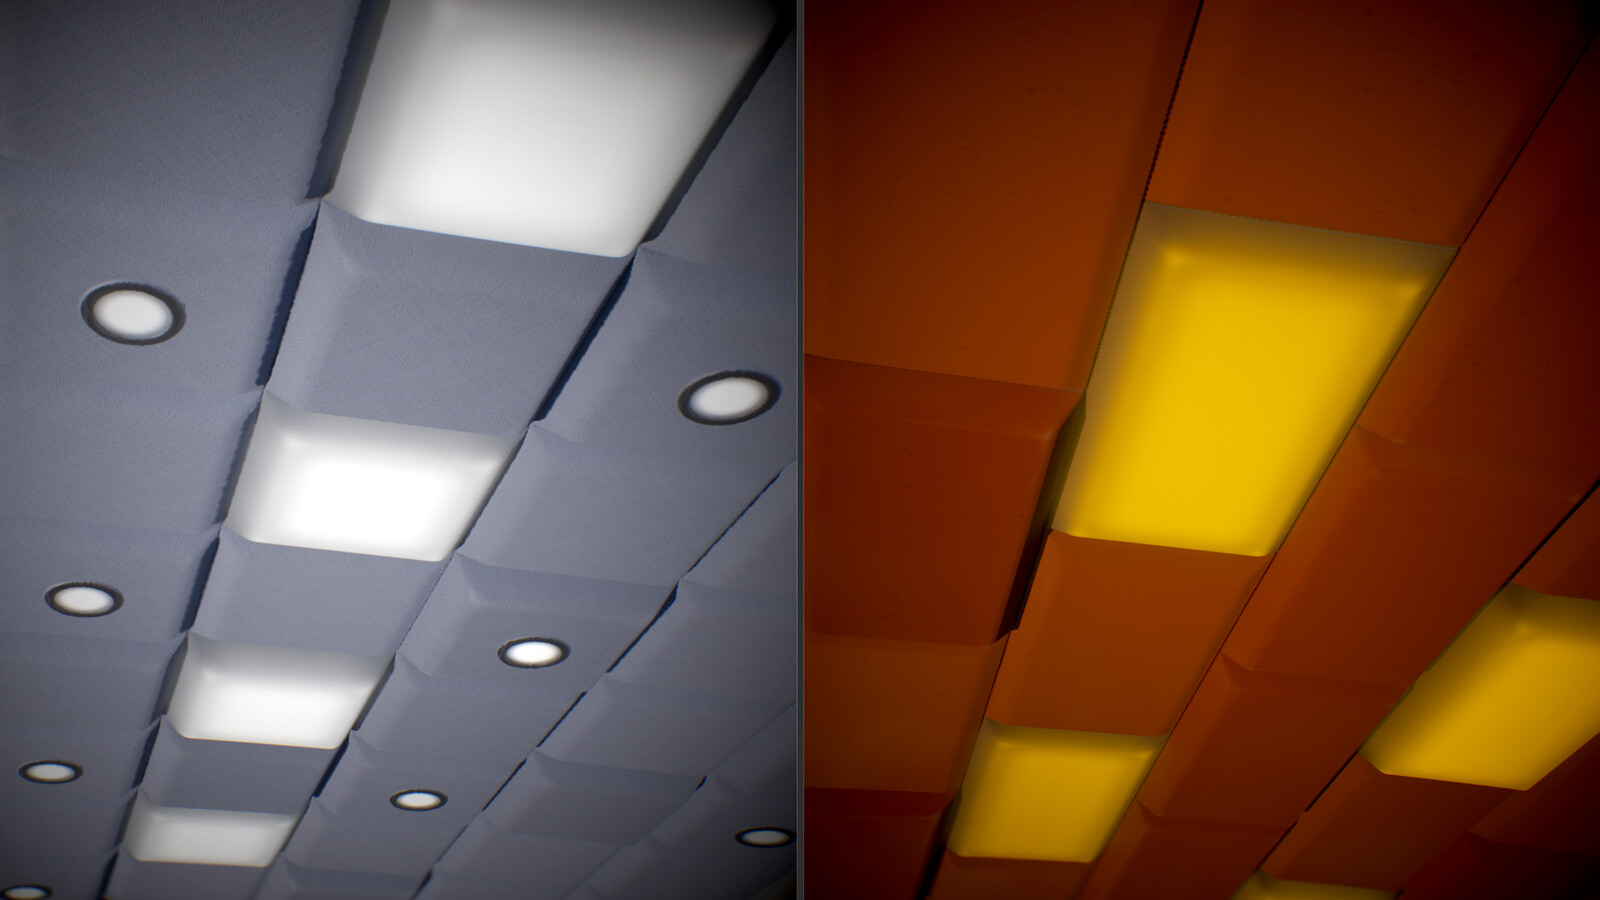 A blocky type of ceiling decor. Found something like this in a few conference rooms.